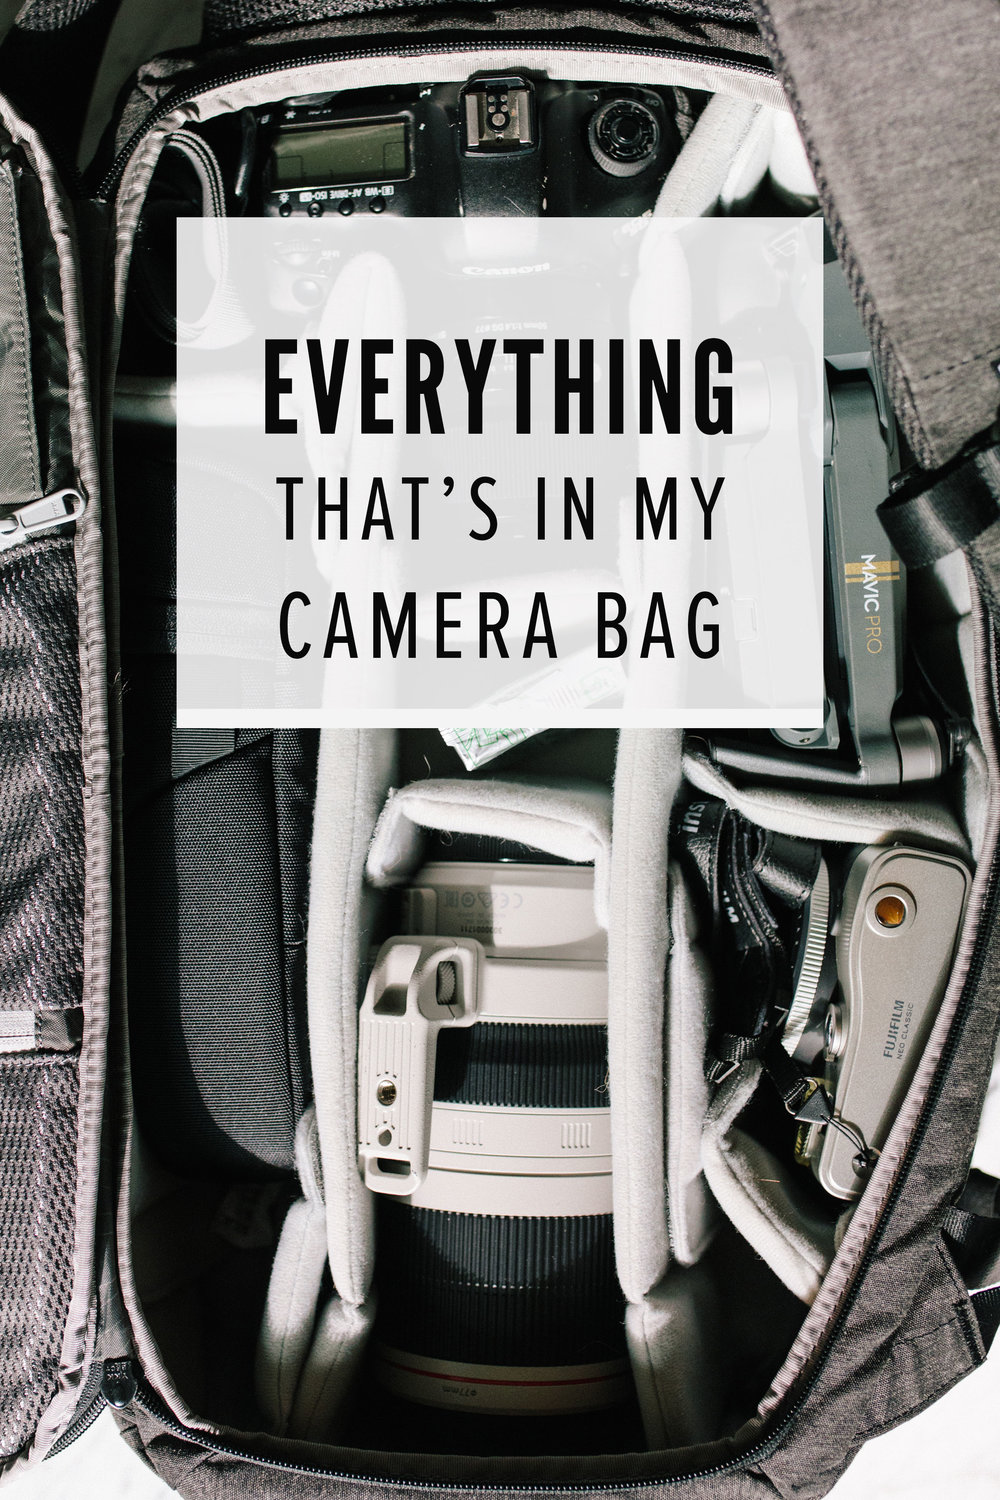 Everything in my camera bag